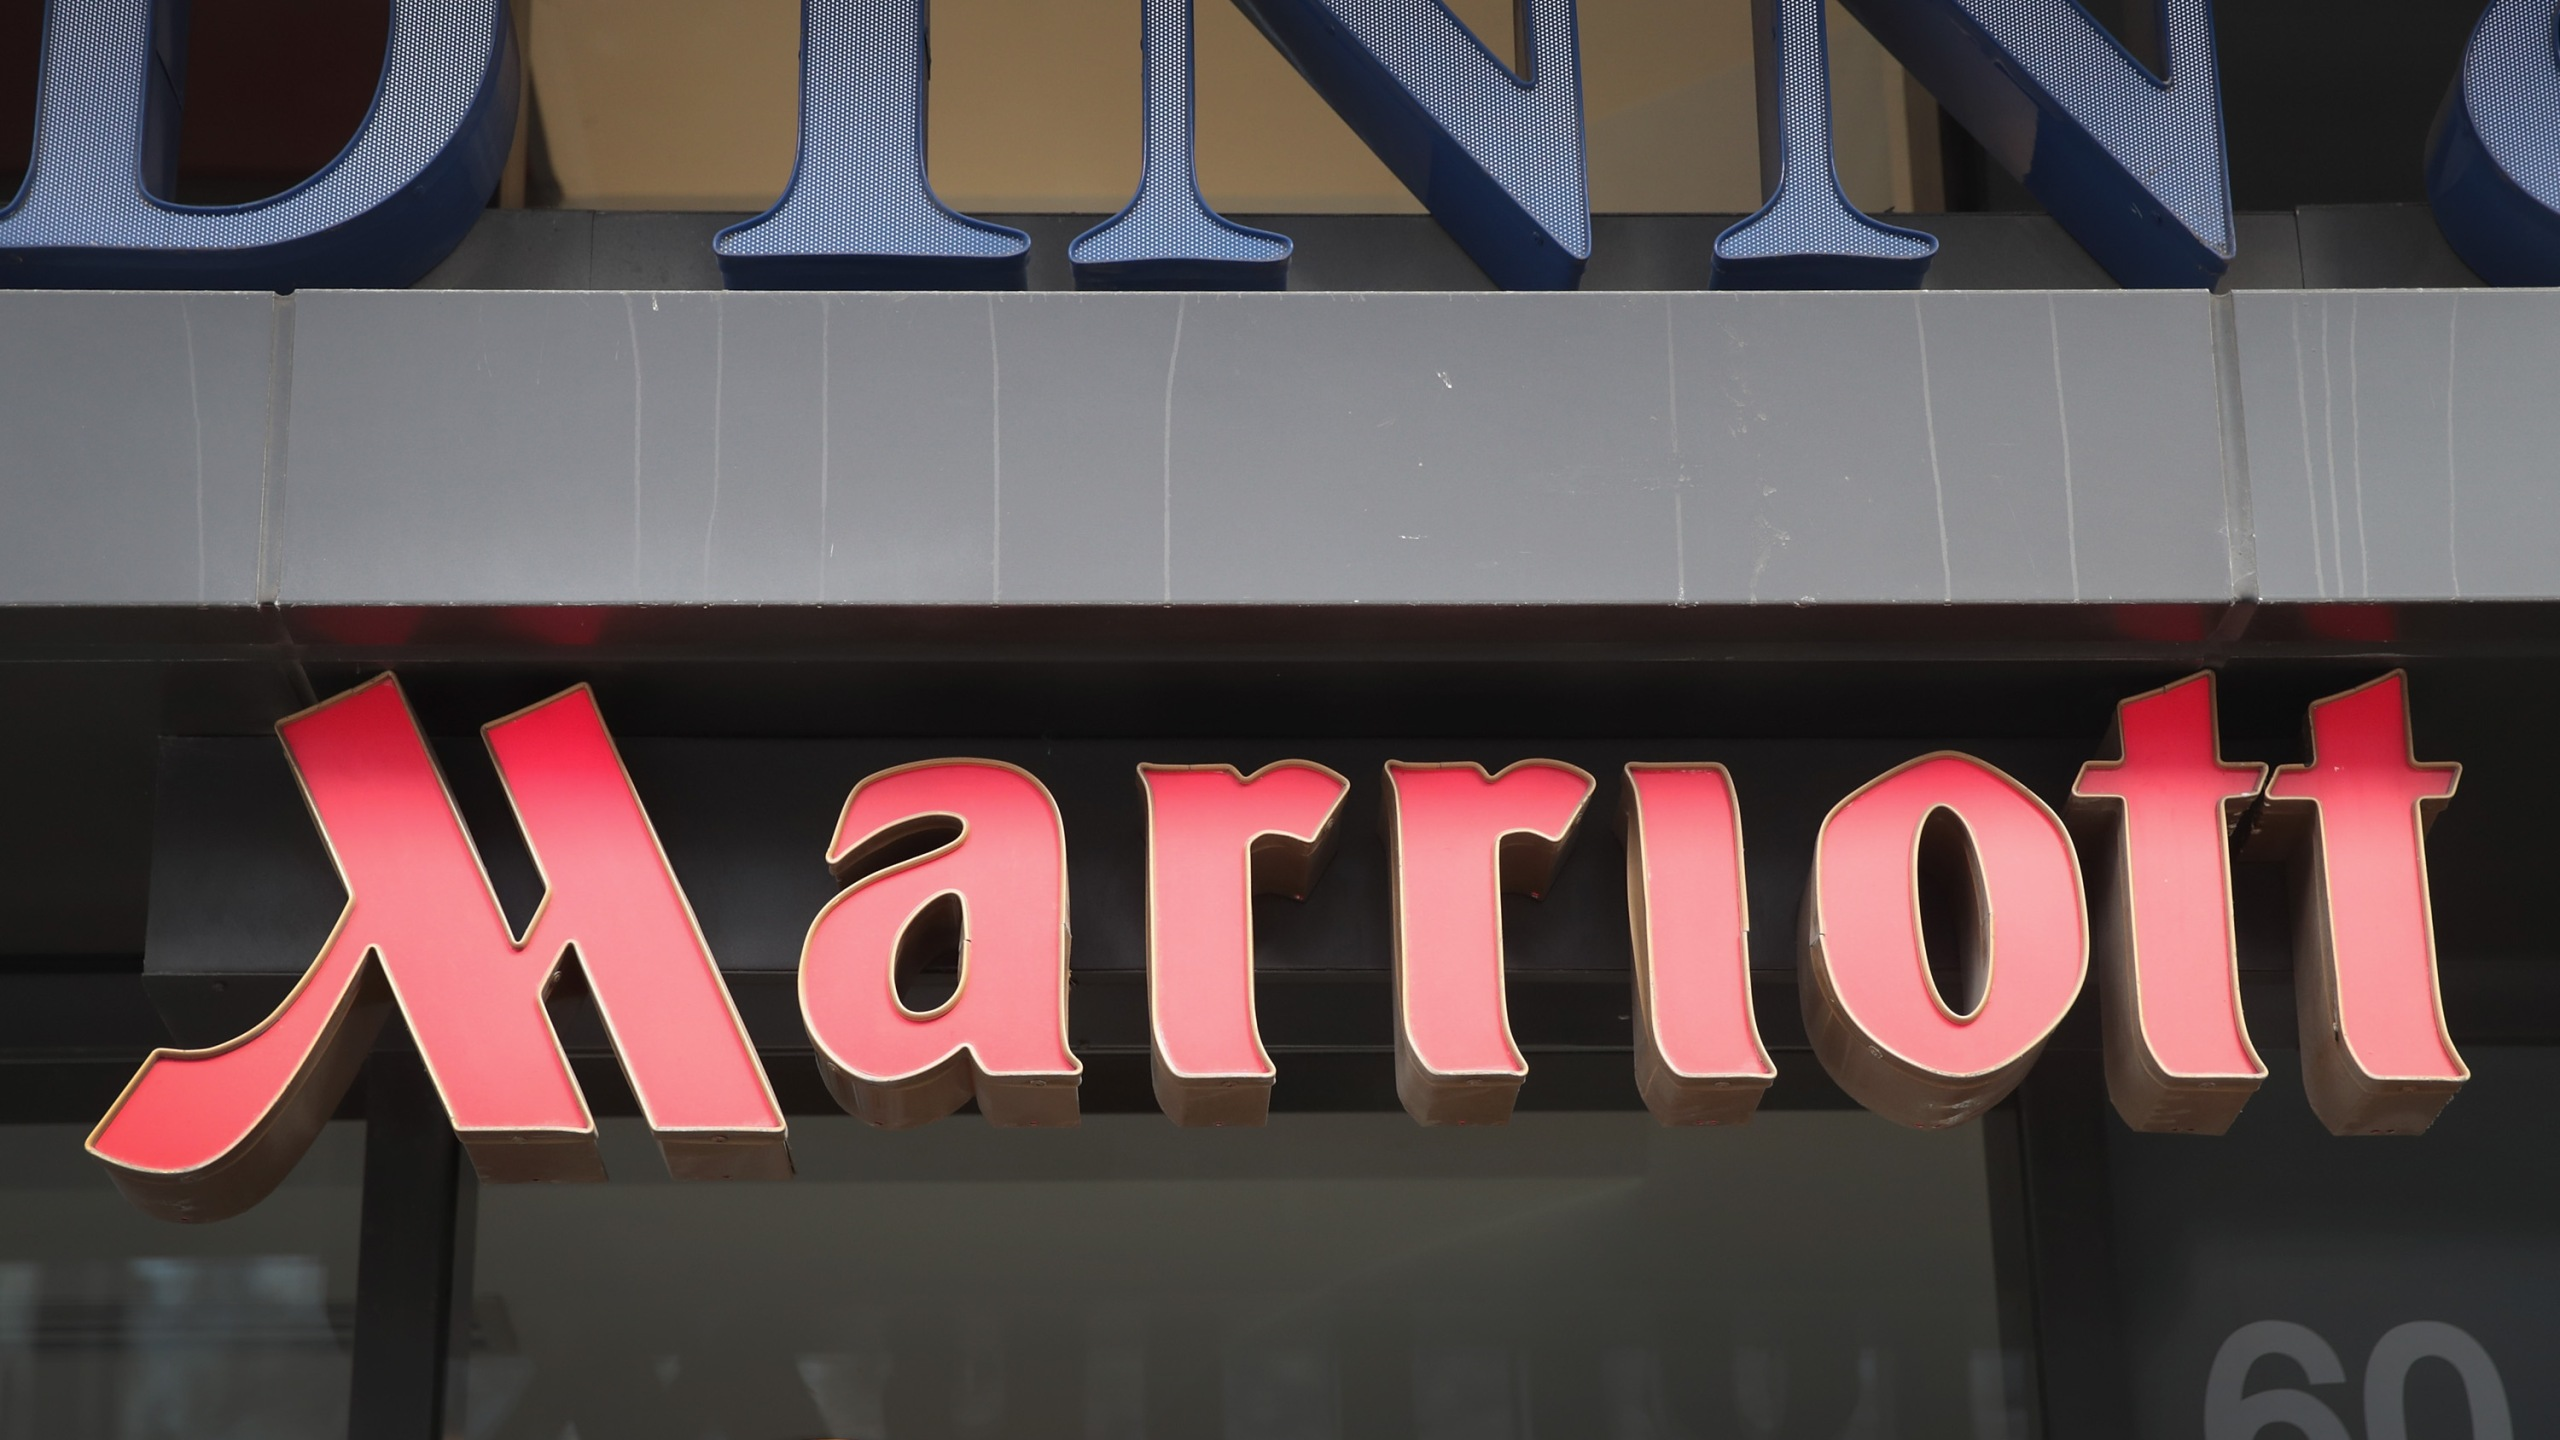 A sign marks the location of a Fairfield Inn & Suites Marriott hotel in Chicago, Illinois, on Nov. 30, 2018. (Credit: Scott Olson / Getty Images)